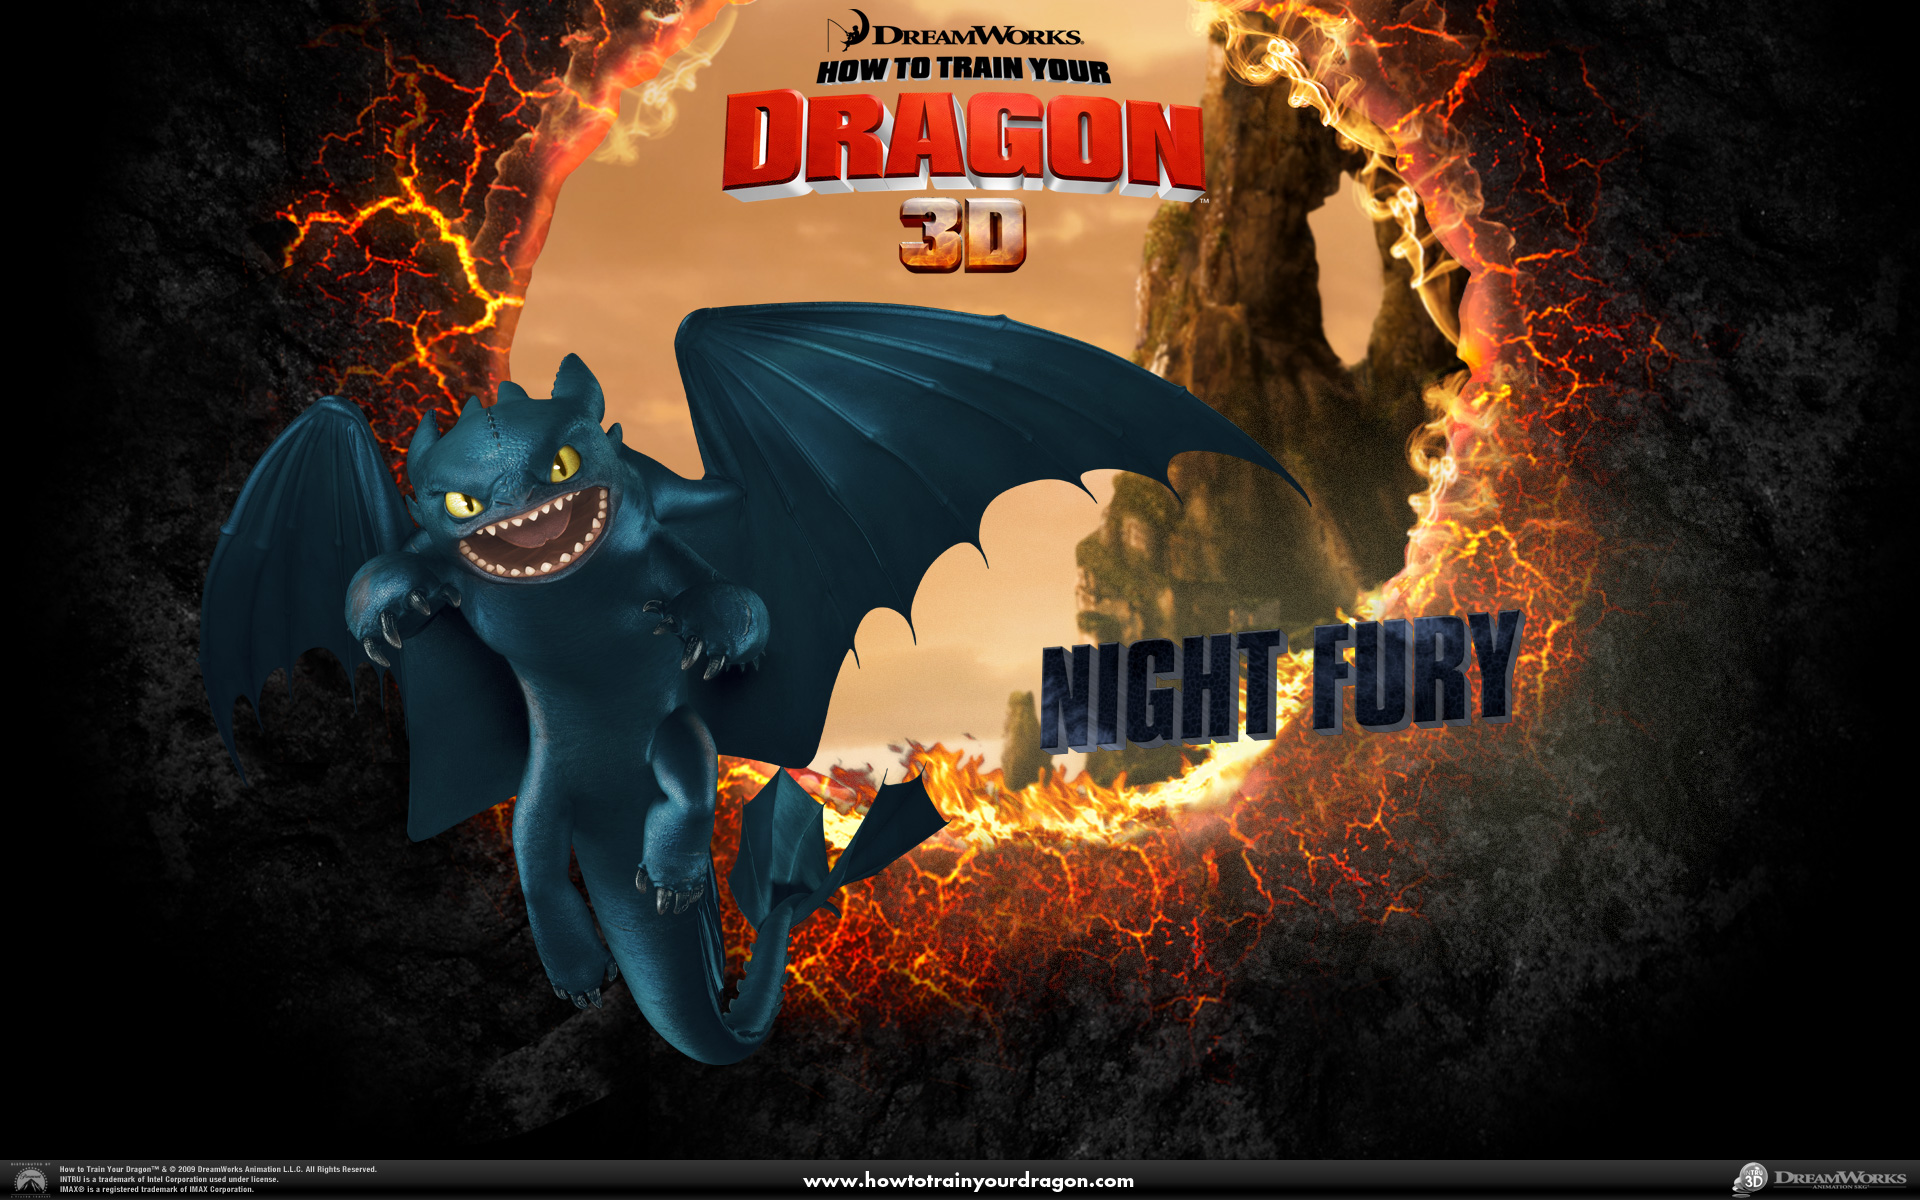 How to train your dragon download reddit